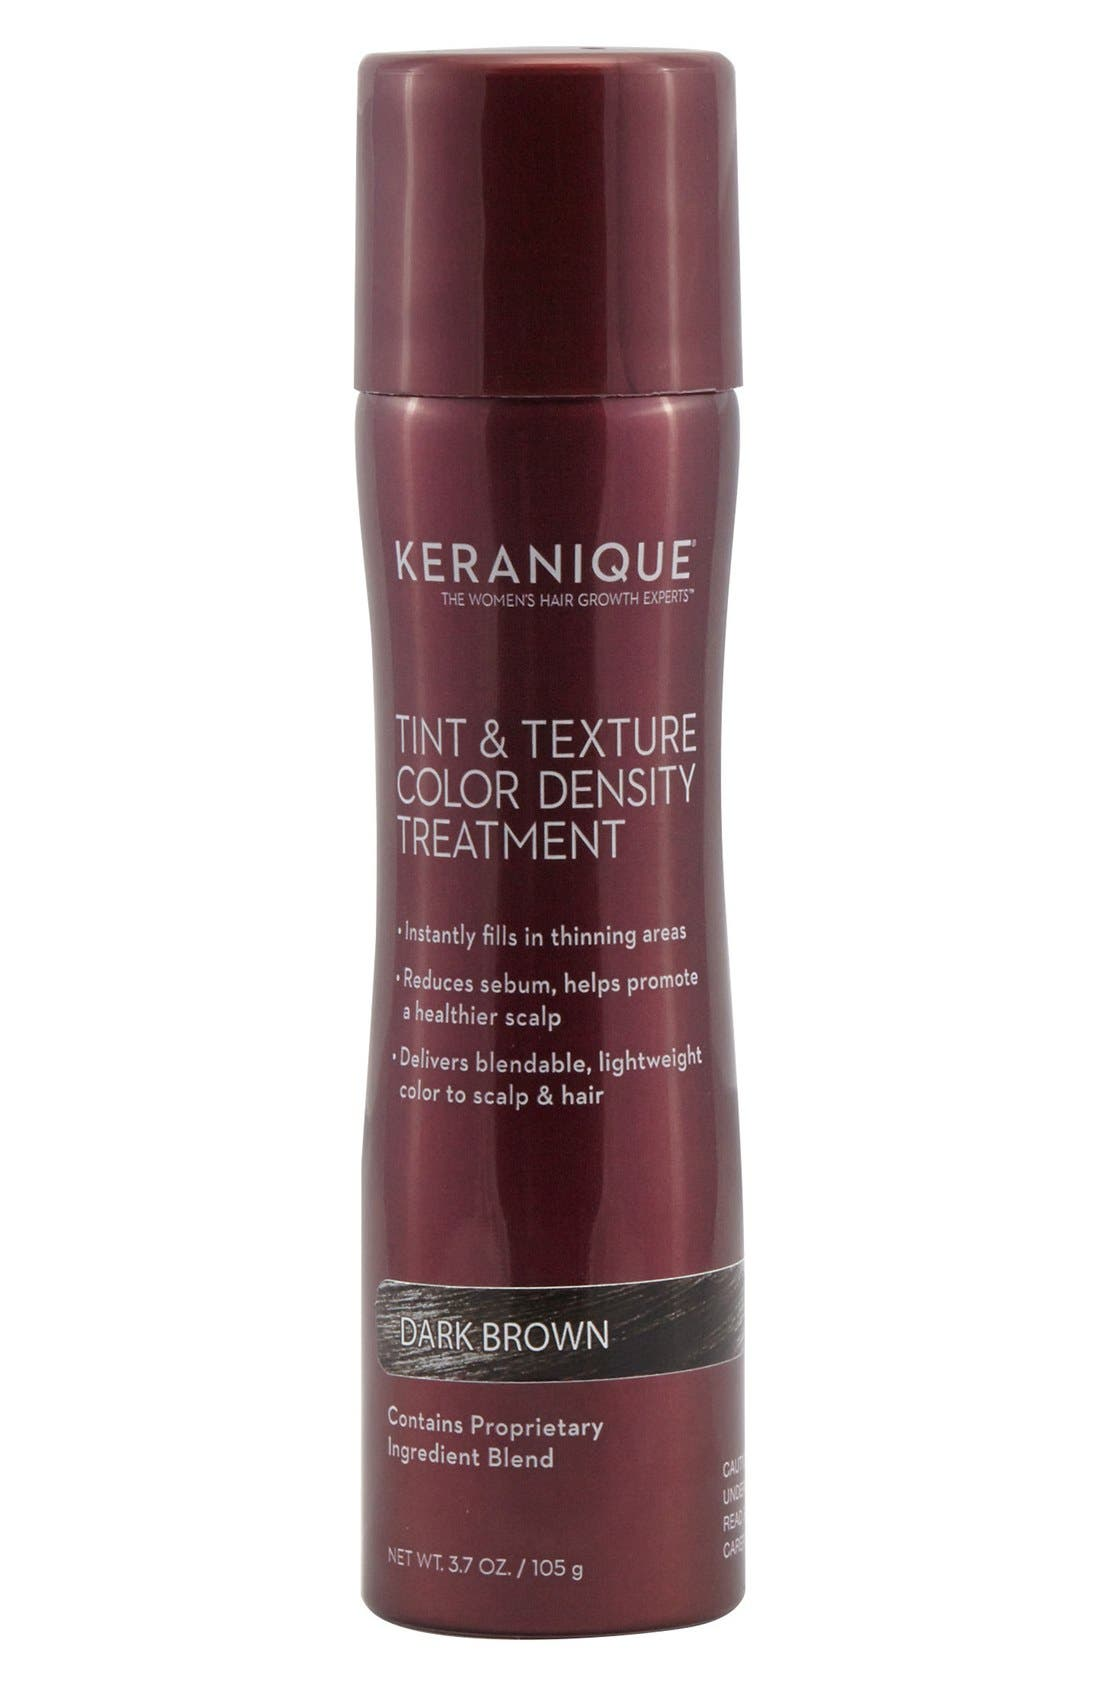 Keranique Tint & Texture Color Density Treatment